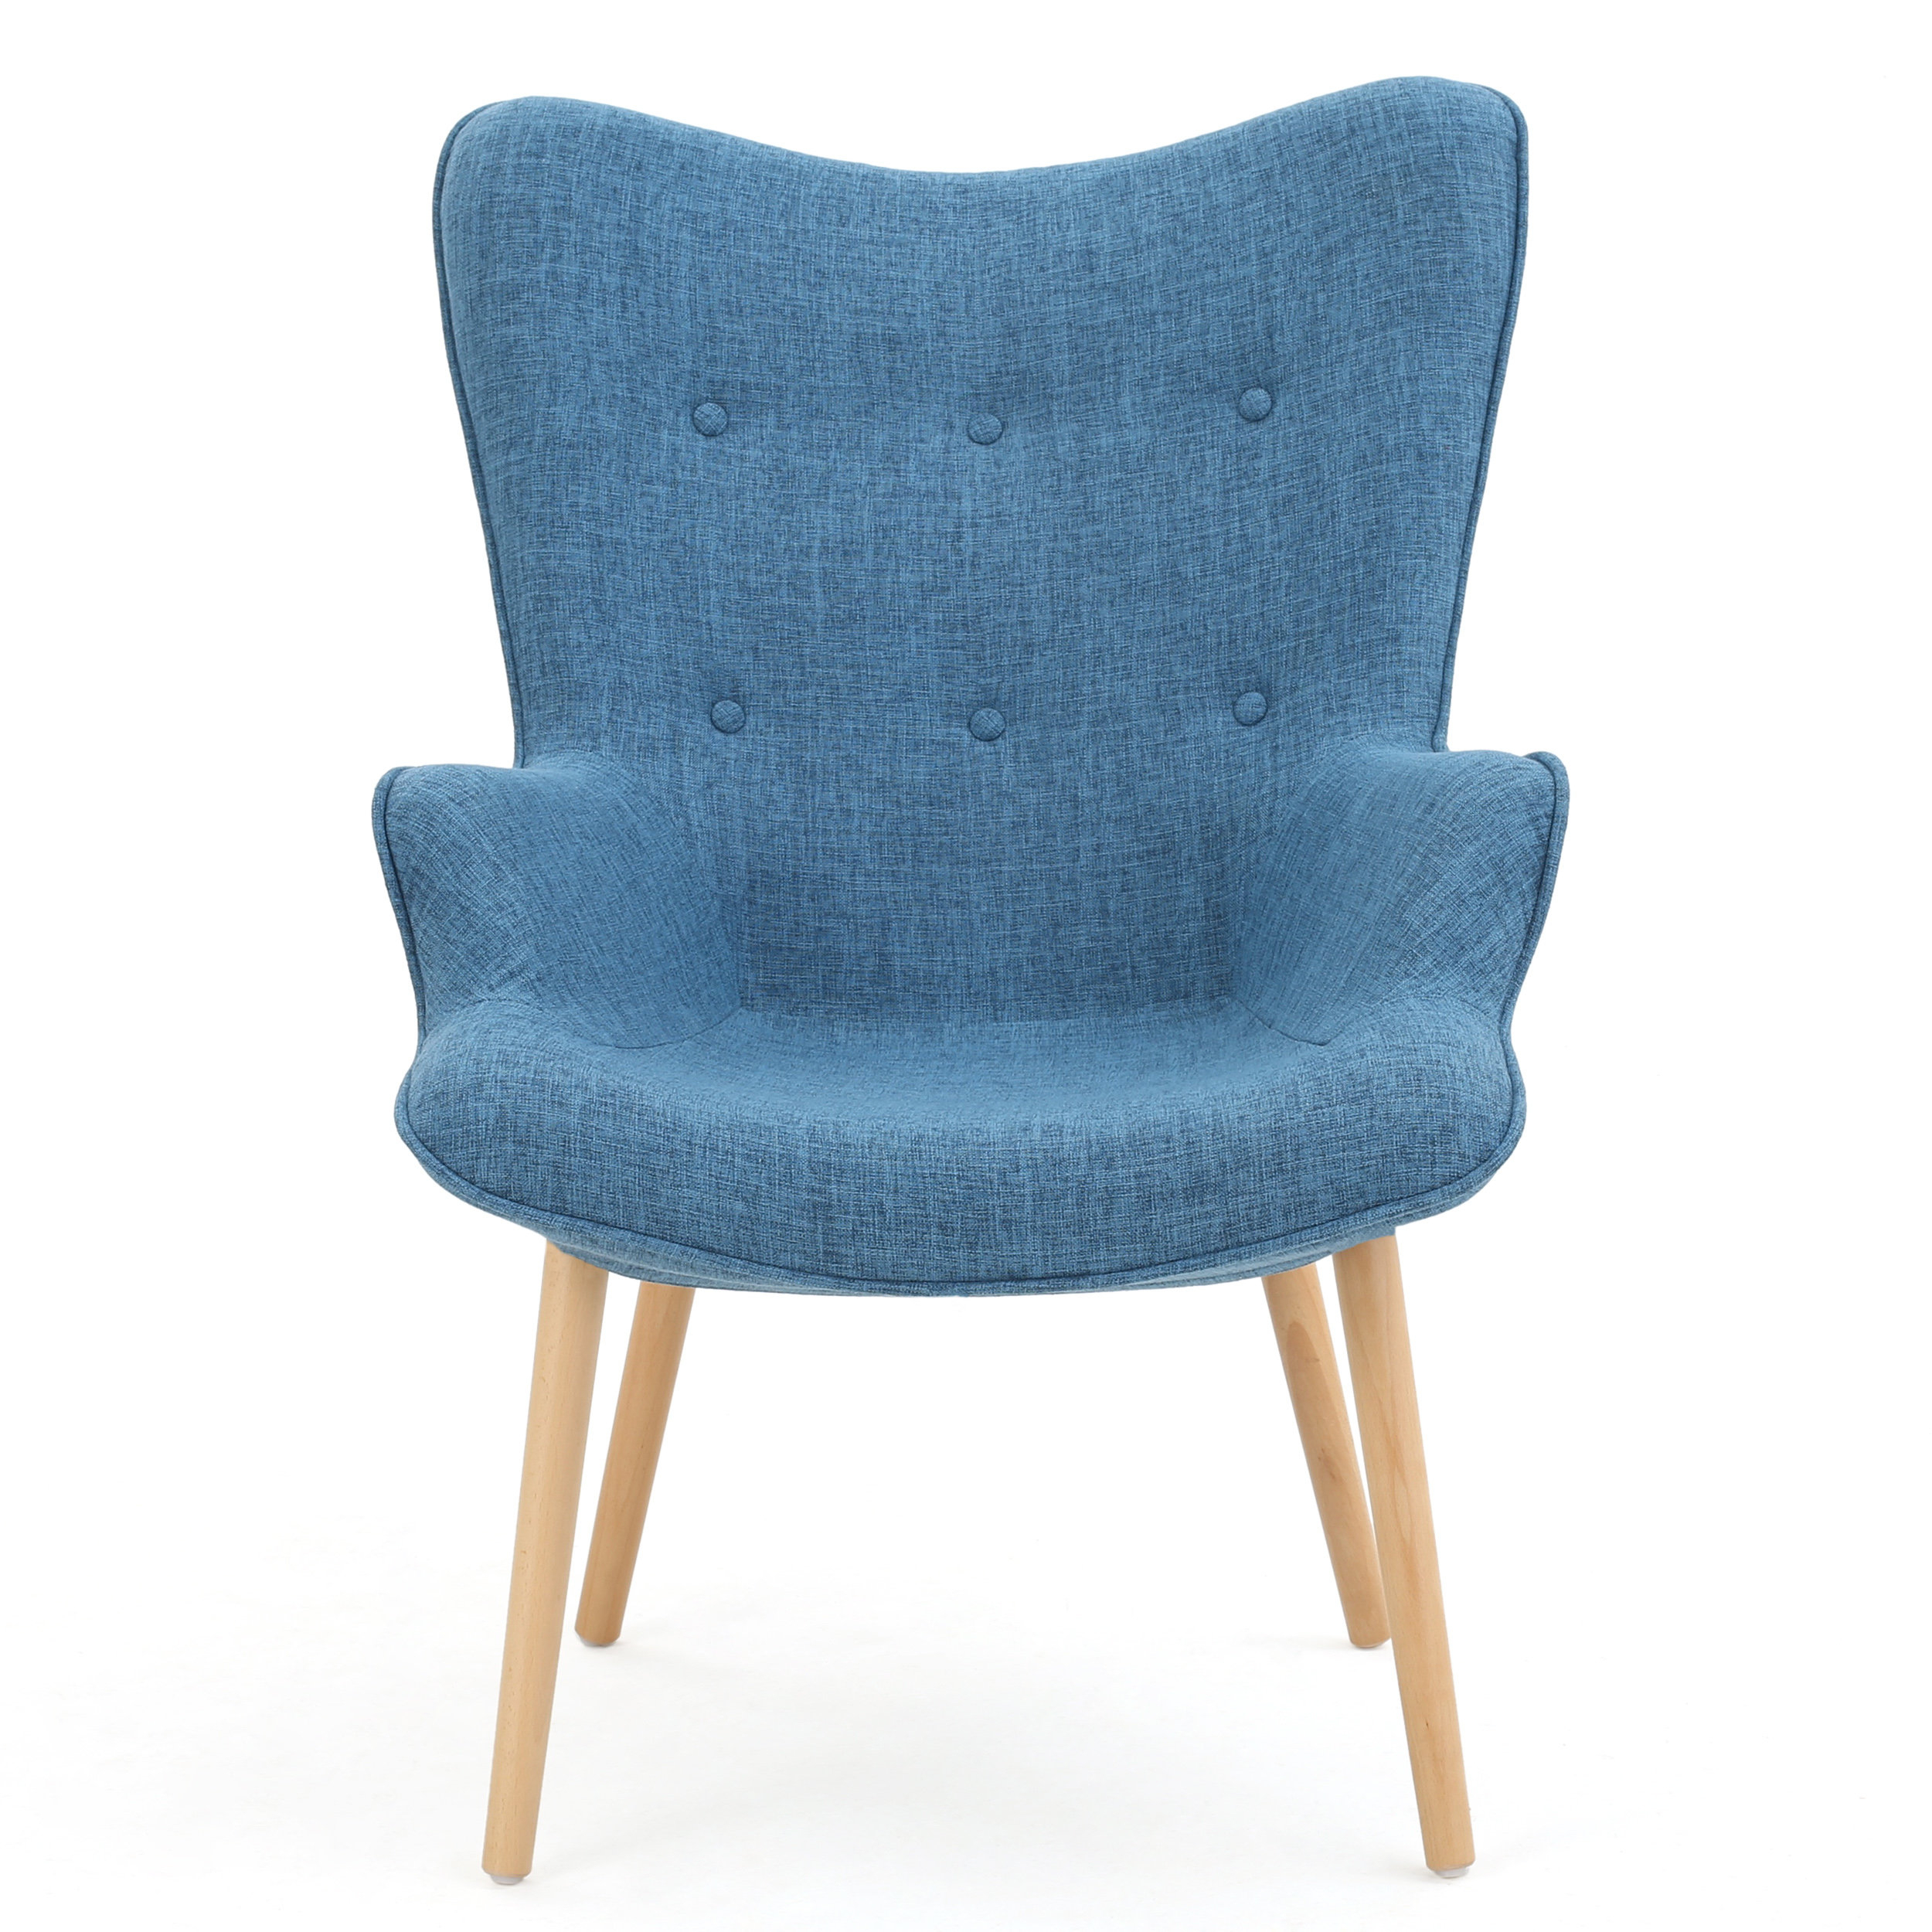 Langley Street Columbus Armchair & Reviews | Wayfair In Katrina Blue Swivel Glider Chairs (Image 11 of 20)